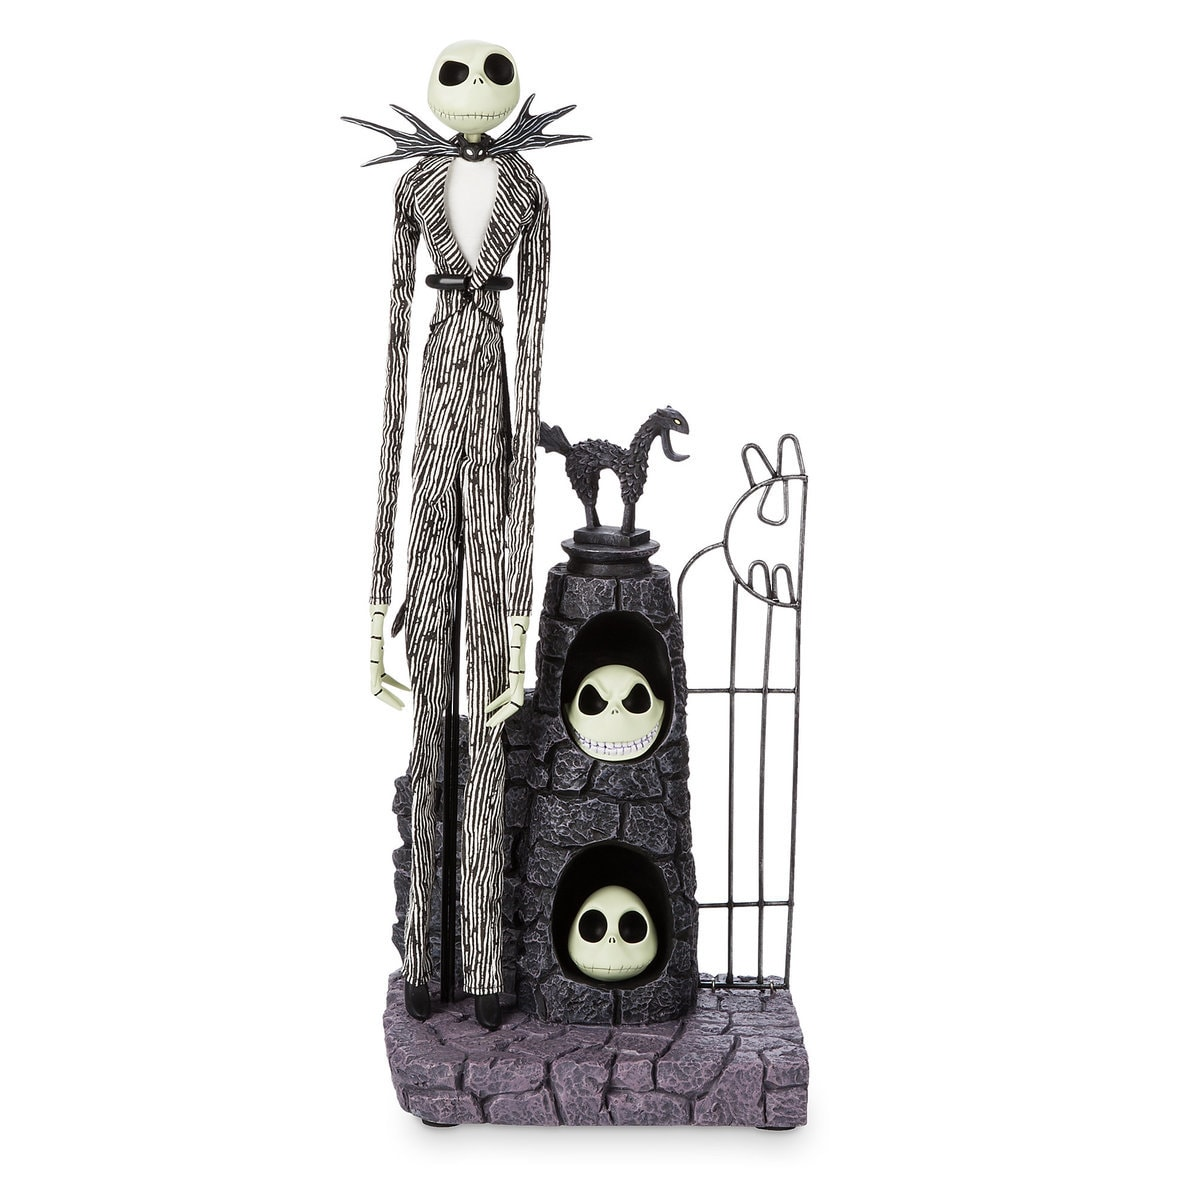 201d26b87f2 Product Image of Jack Skellington 25th Anniversary Limited Edition Doll -  The Nightmare Before Christmas